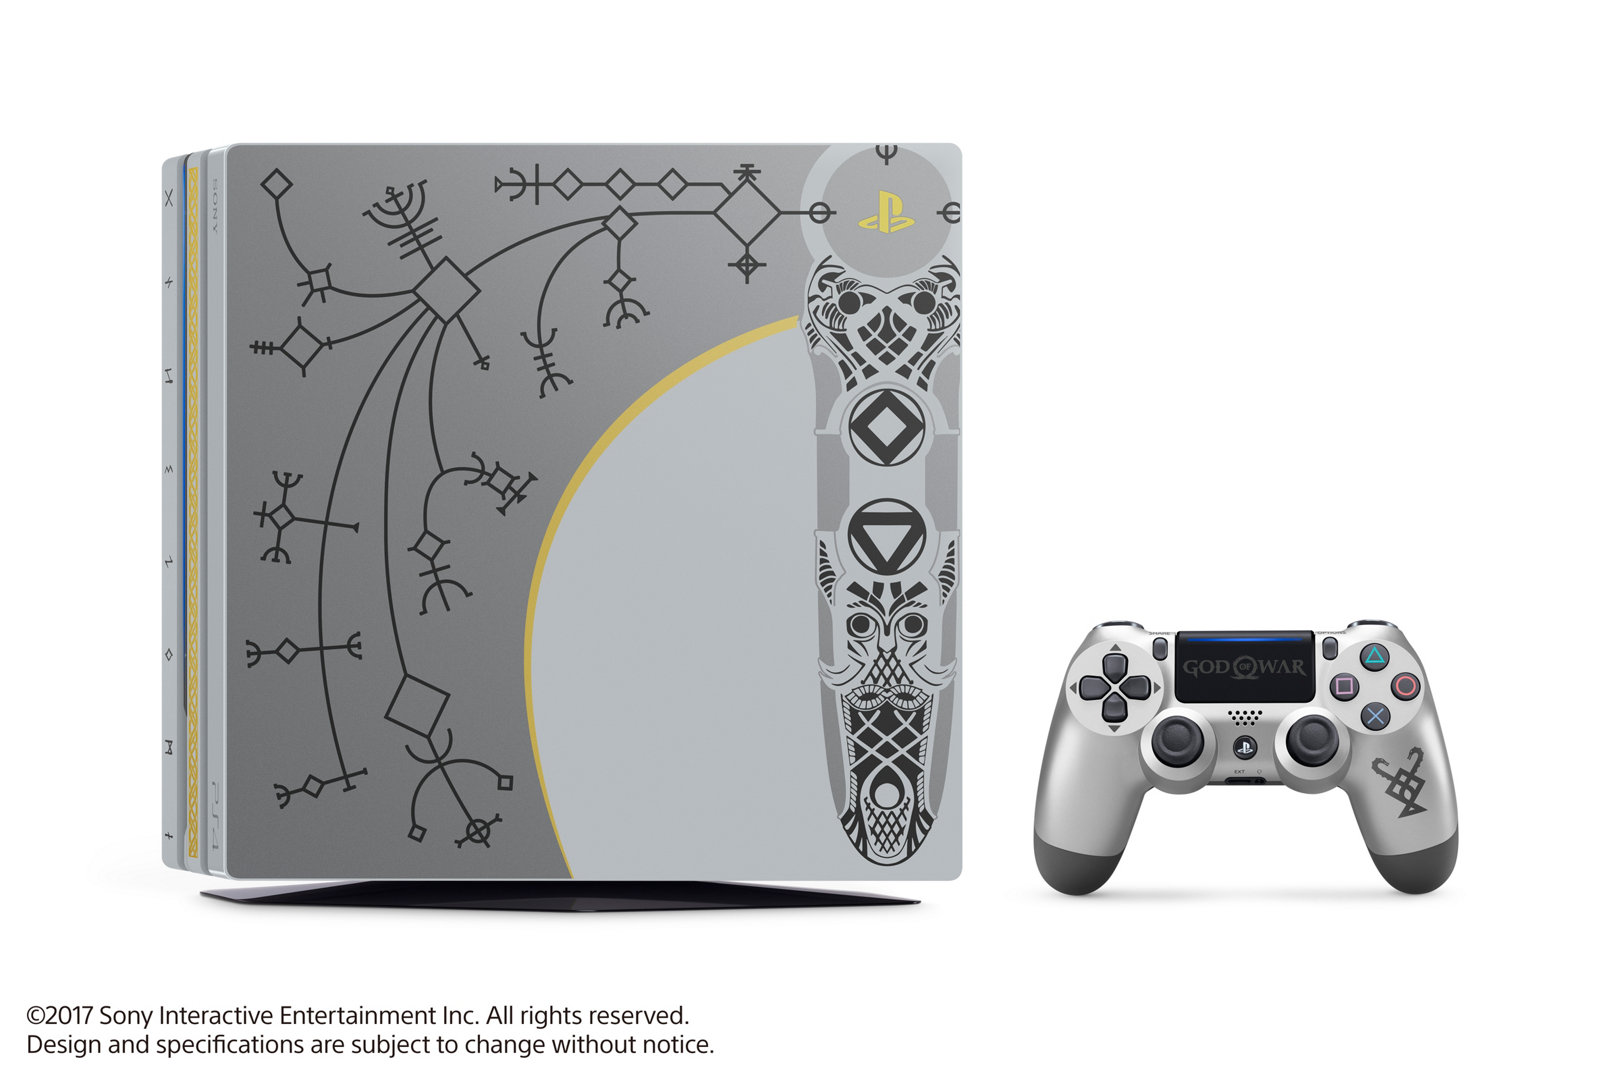 Limited Edition God Of War Ps4 Pro Bundle